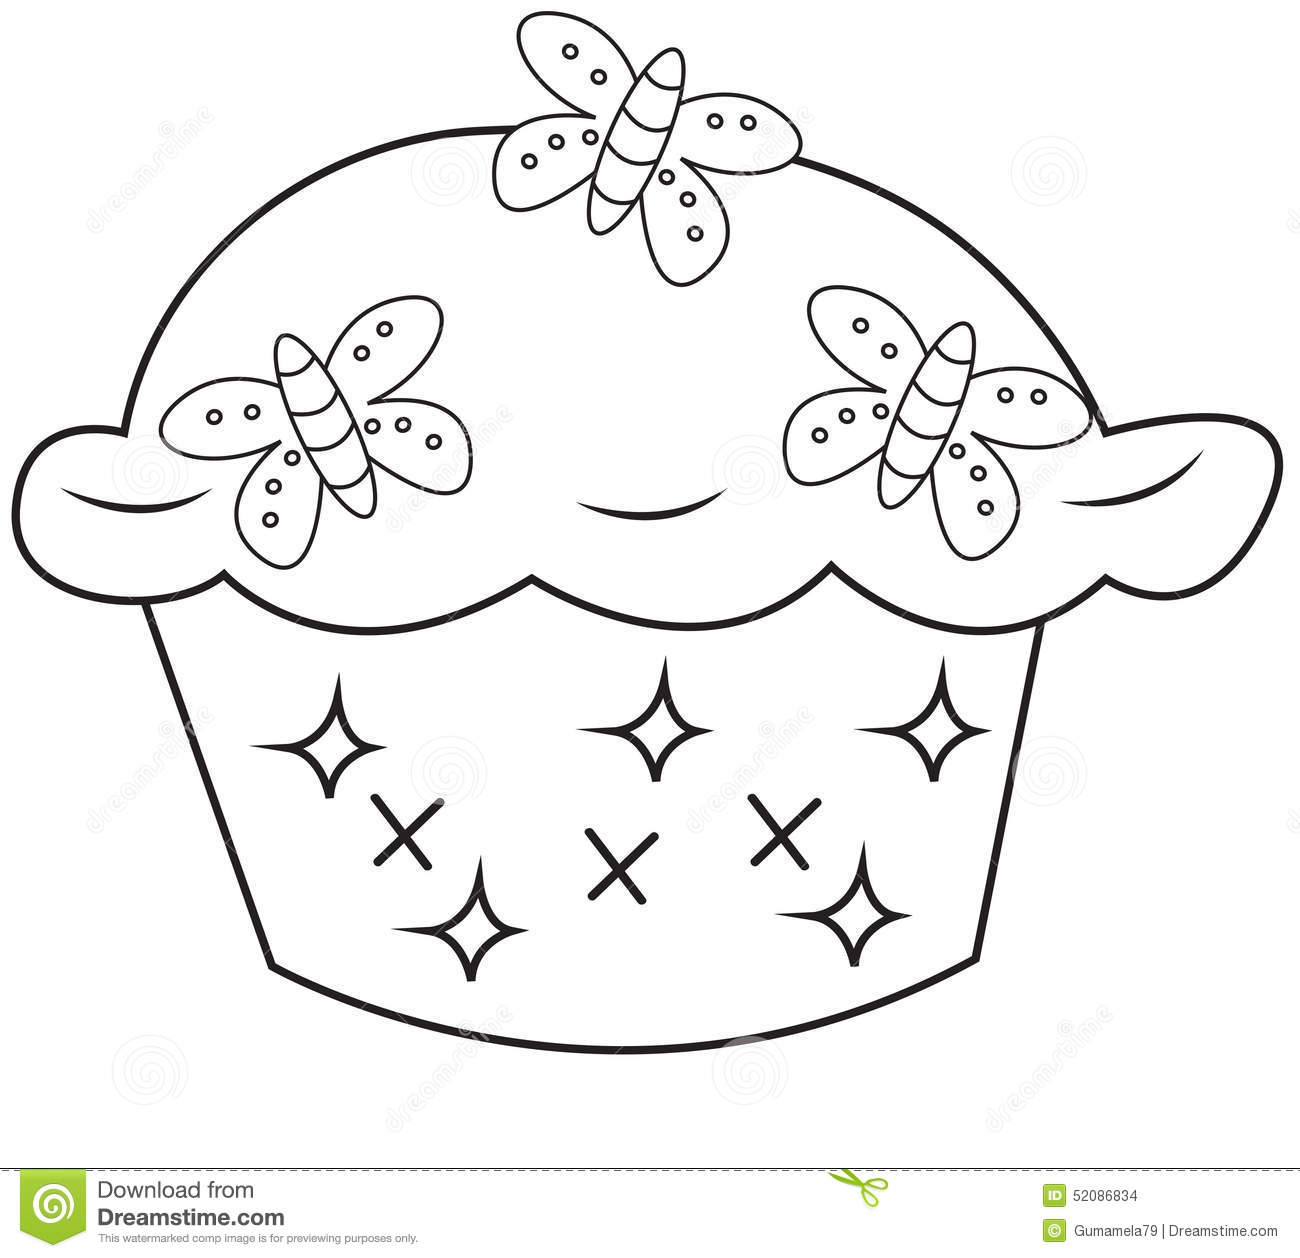 Cupcake coloring page stock illustration. Illustration of abstract ...